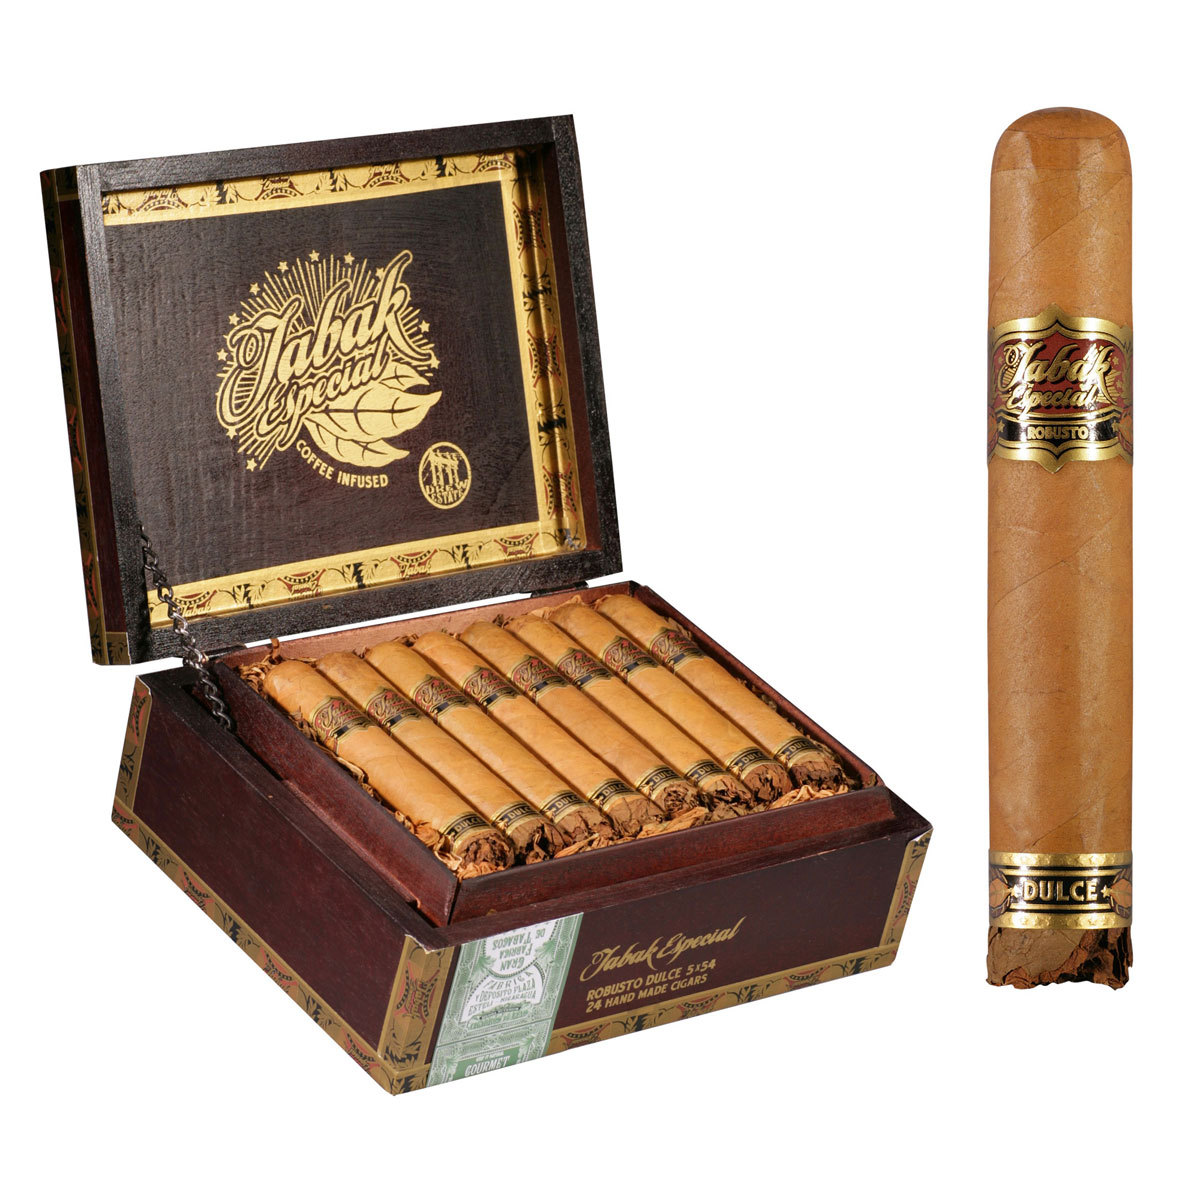 Drew Estate Tabak Belicoso, Negra - Box of 24 image